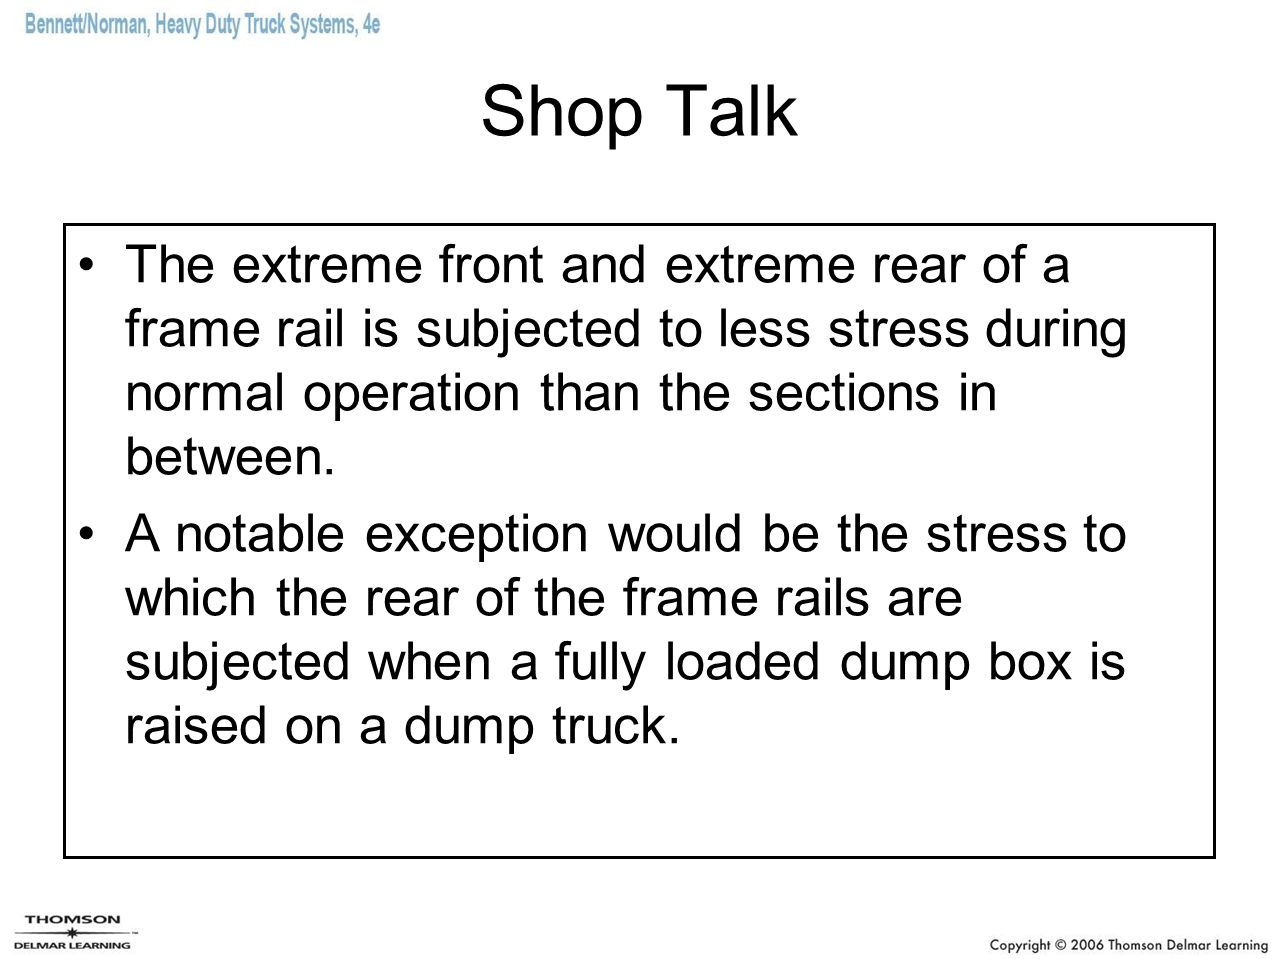 Shop Talk The extreme front and extreme rear of a frame rail is subjected to less stress during normal operation than the sections in between.